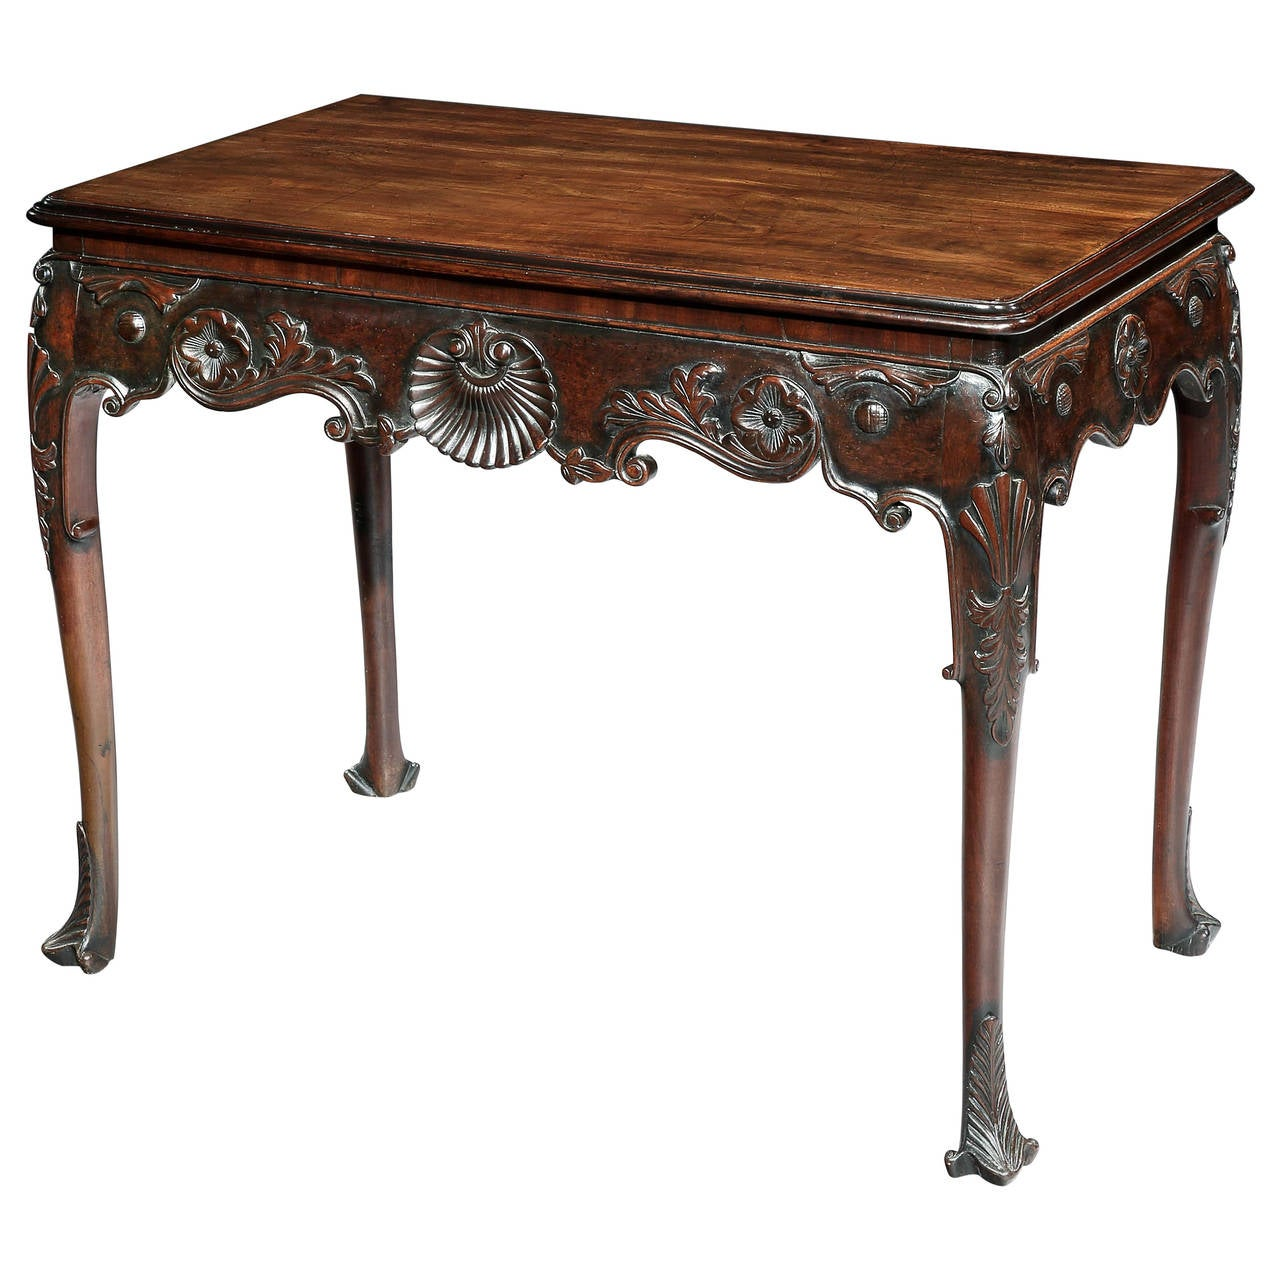 Irish george iii mahogany console table for sale at 1stdibs for Table console